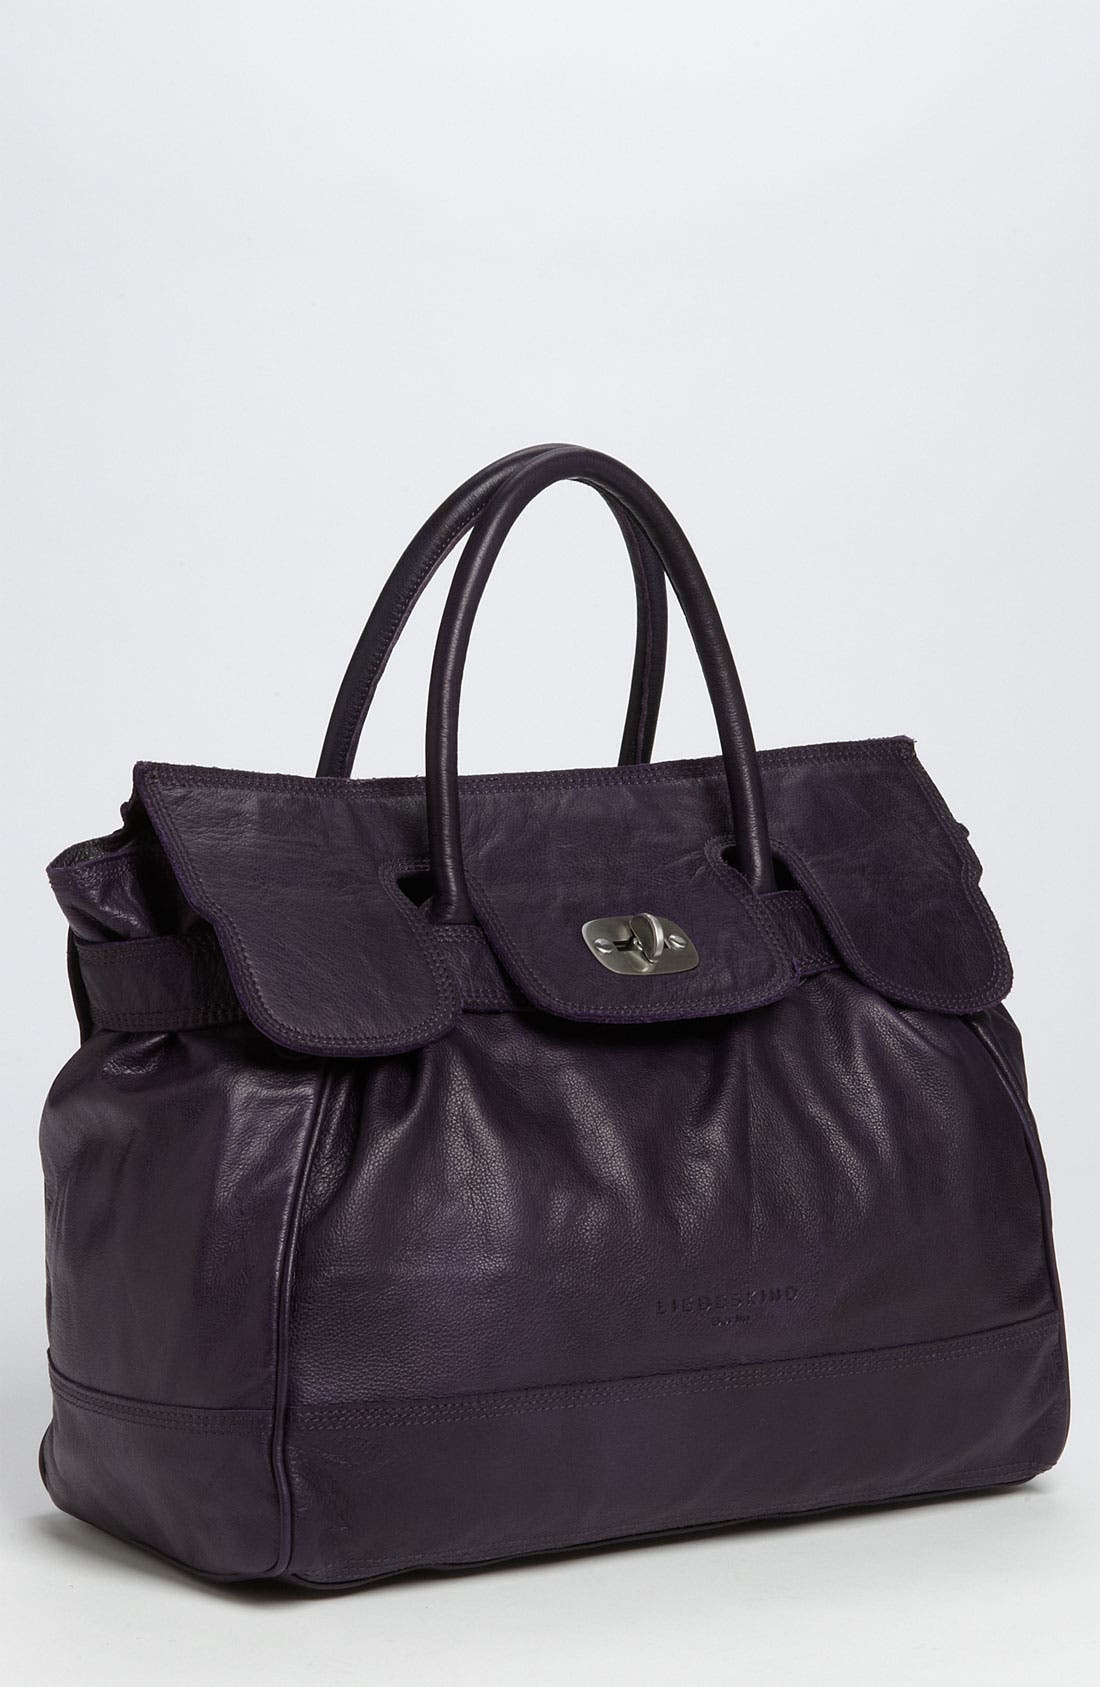 Alternate Image 1 Selected - Liebeskind 'Mia - Large' Soft Leather Satchel